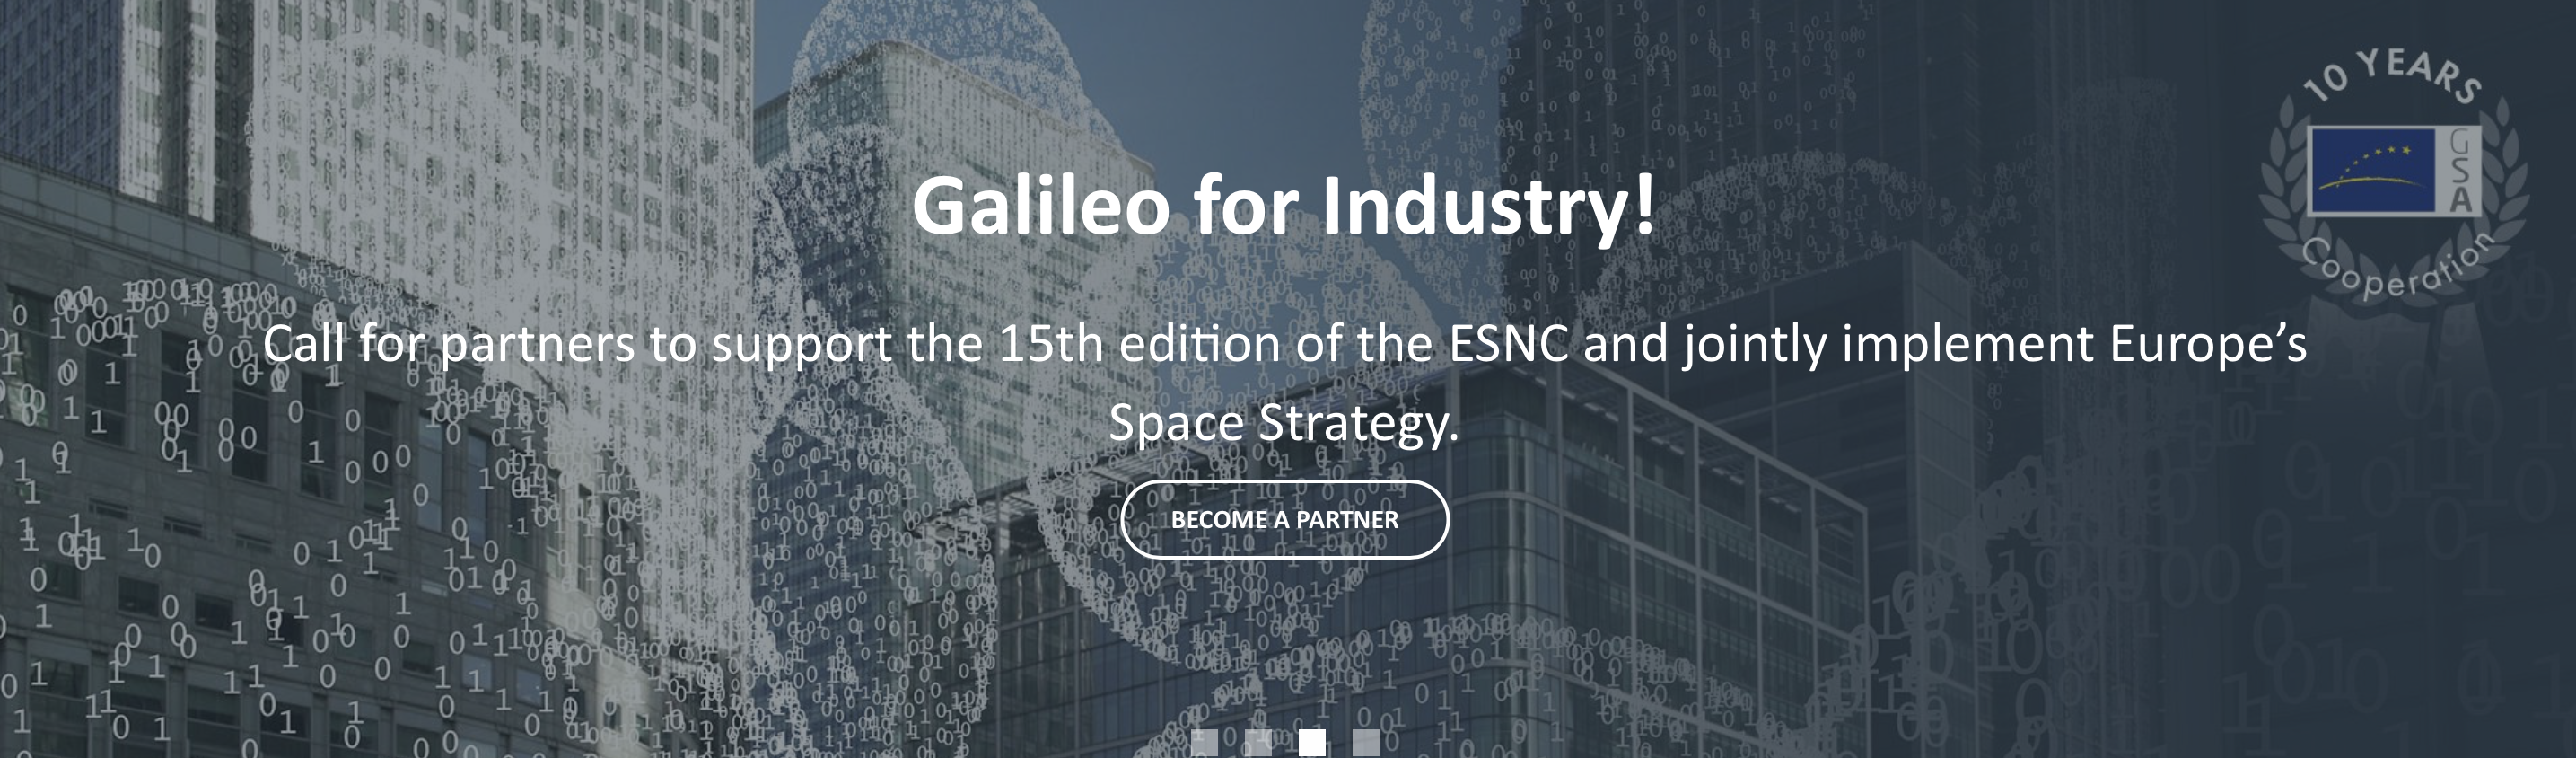 Galileo_for_industry